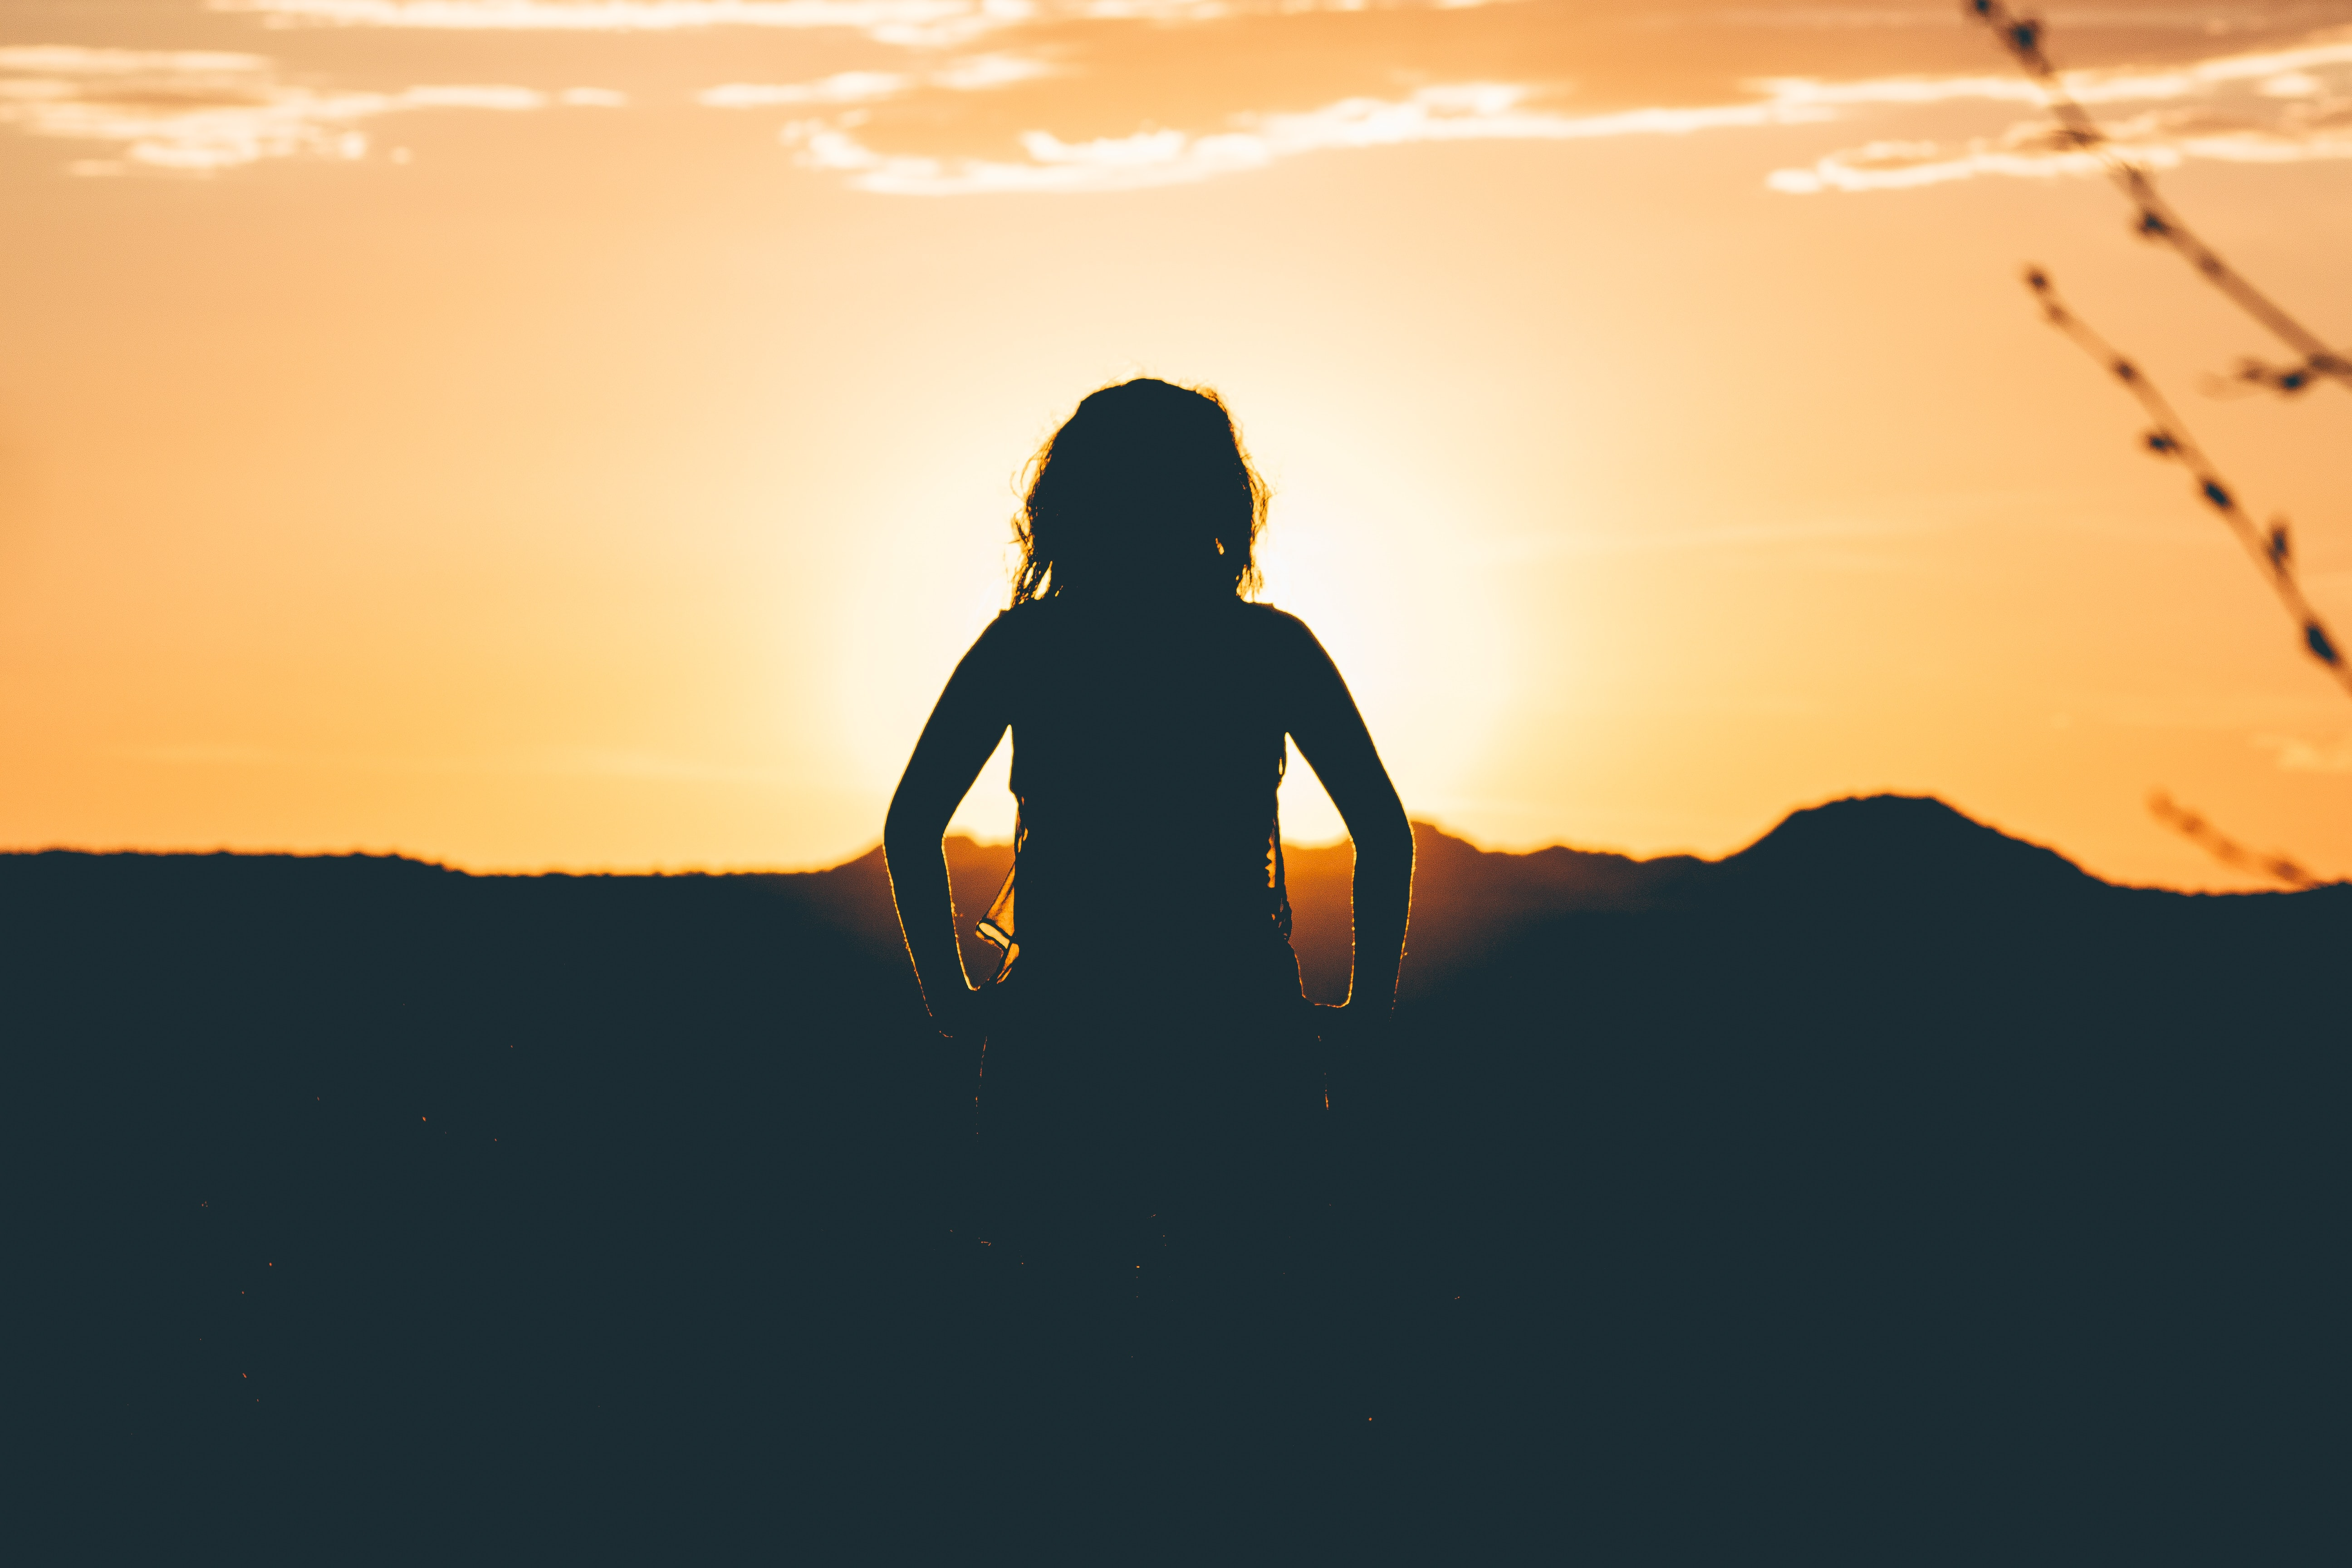 silhouette of person looking at sunset